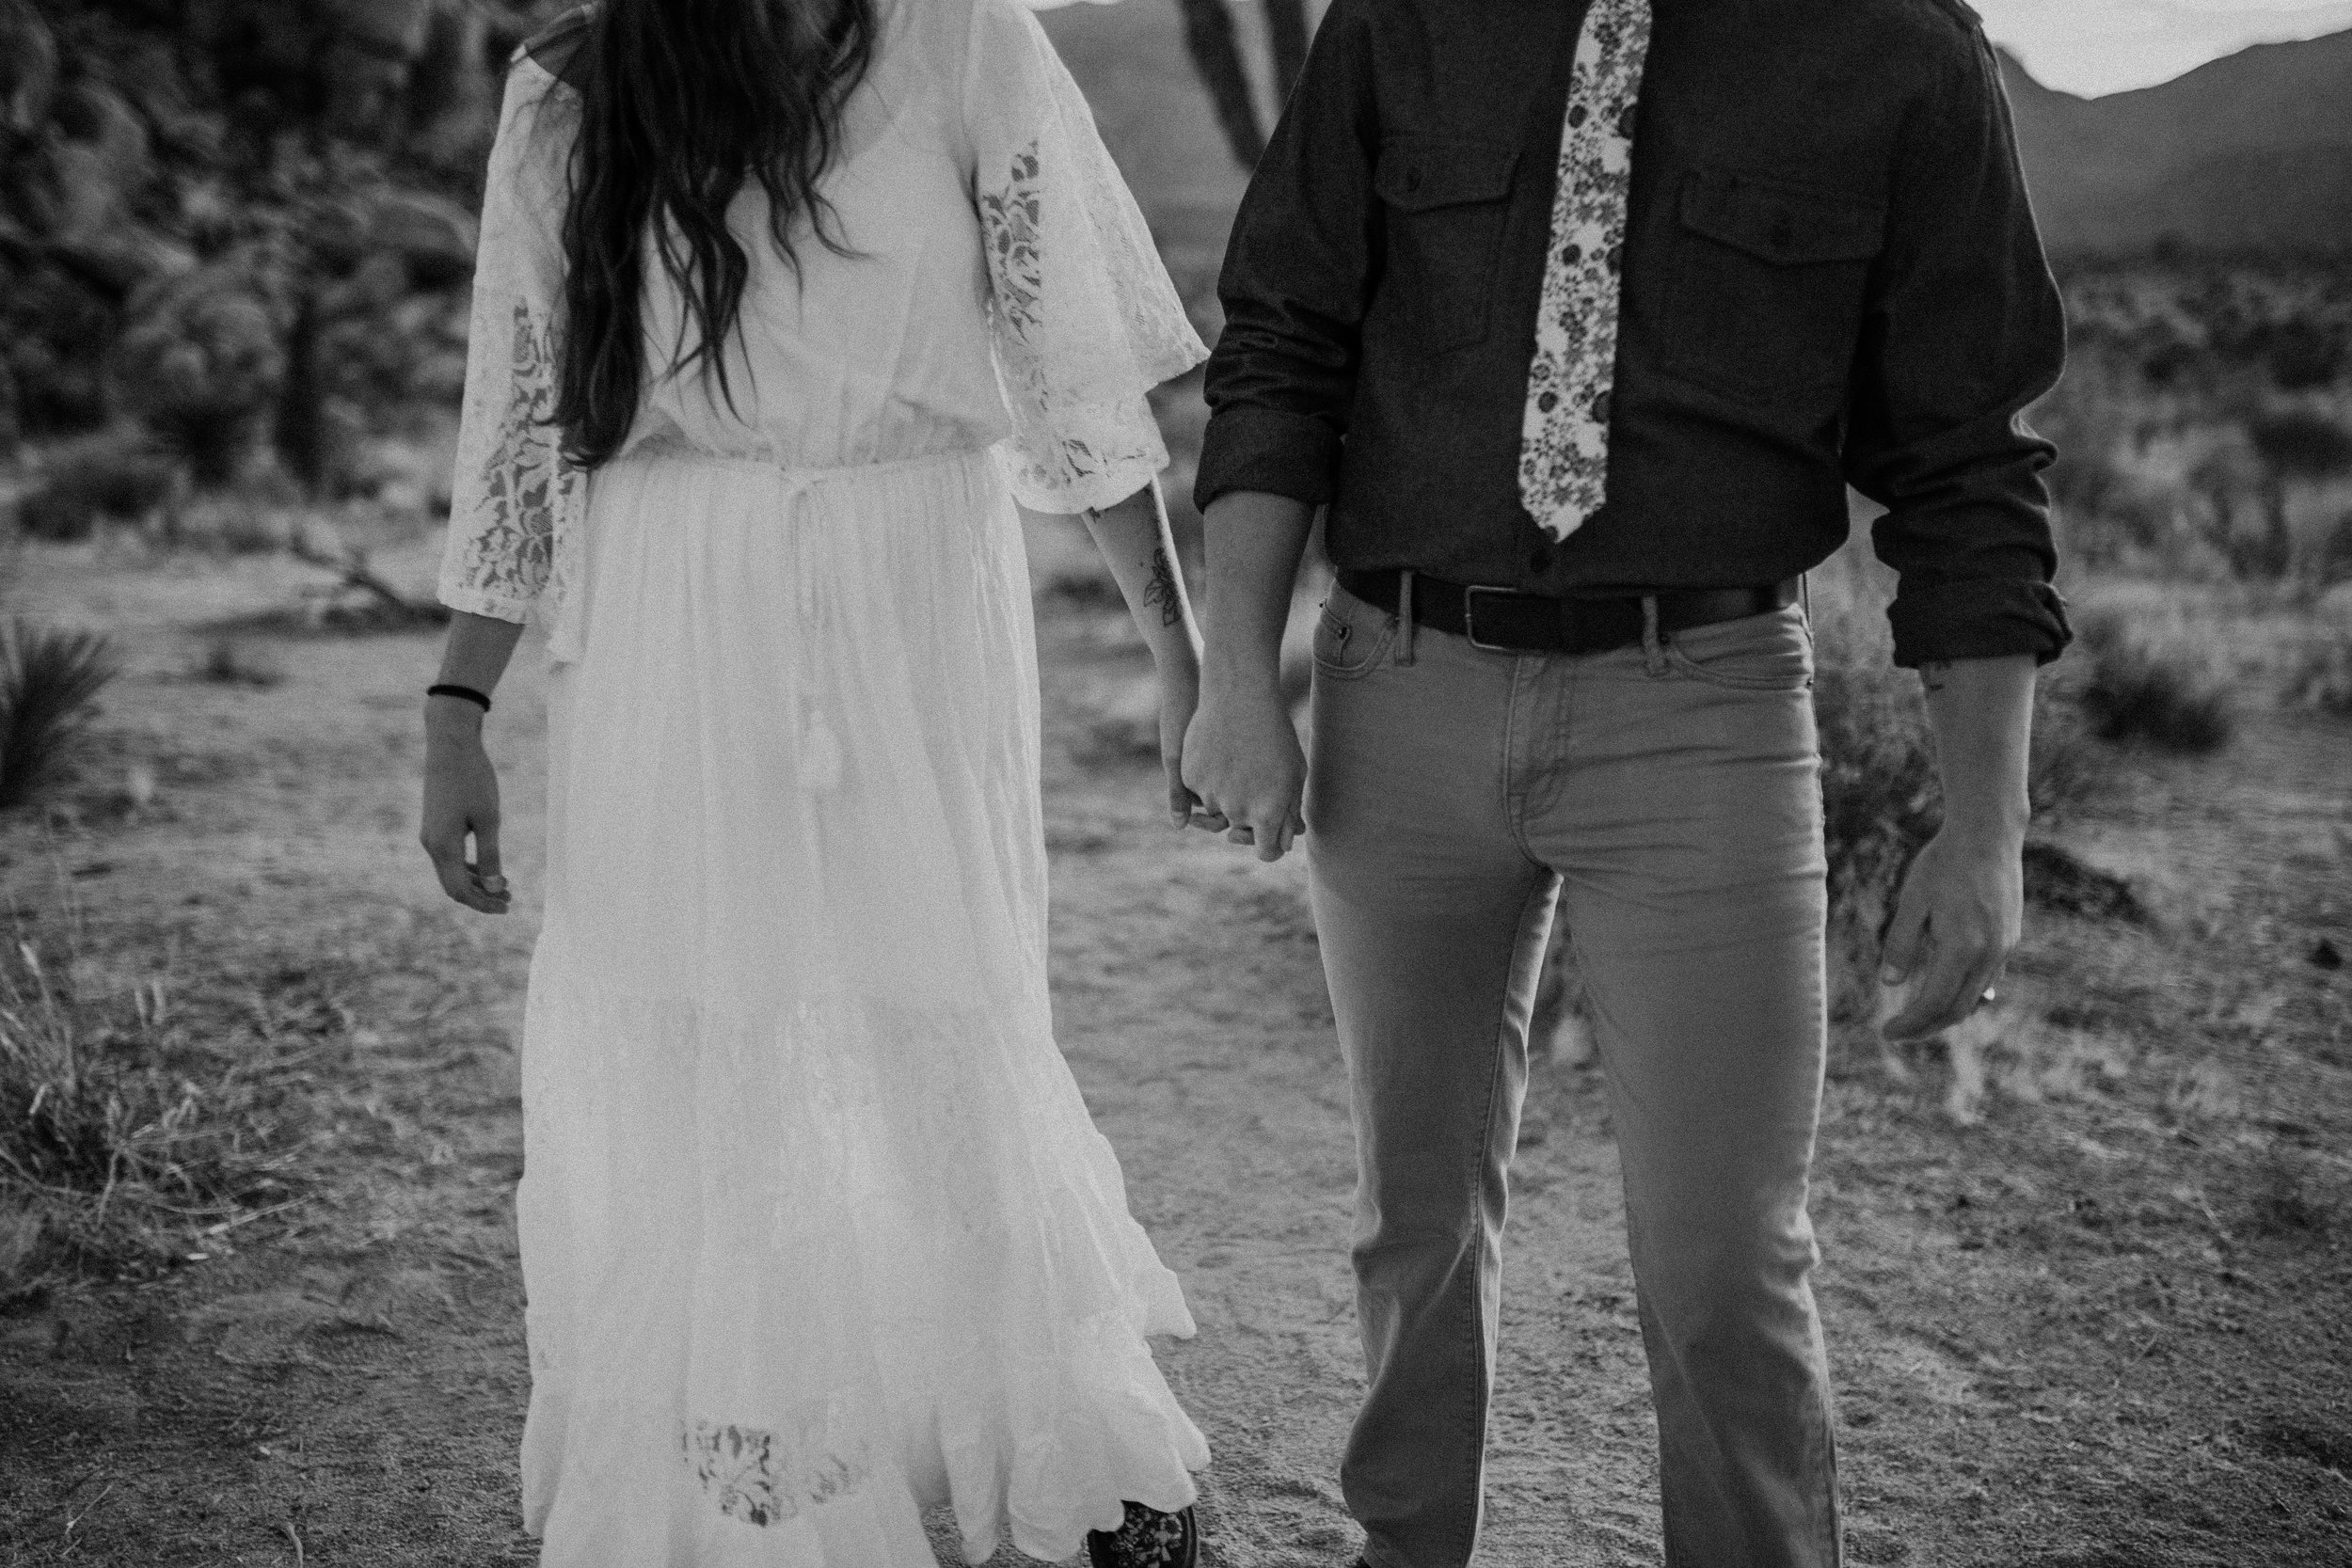 Joshua Tree National Park Adventure Couples Session Photographer Payton Marie Photography-11.jpg